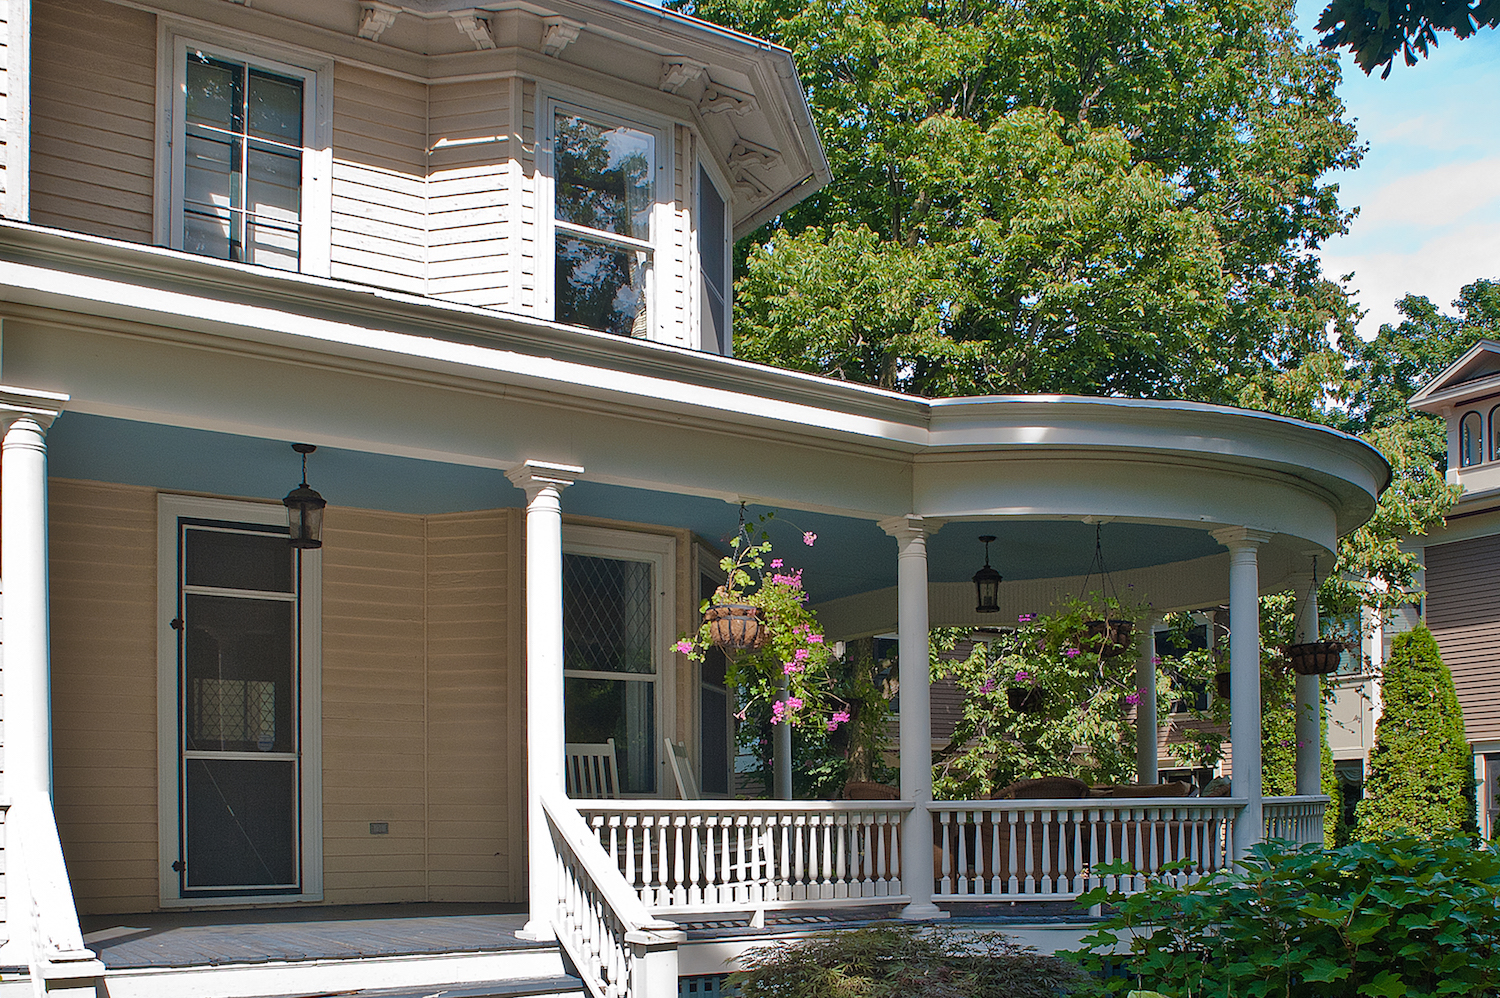 This home had three porches, one for the doctor's office entrance, a connecting porch and a large curved porch that had was much larger.